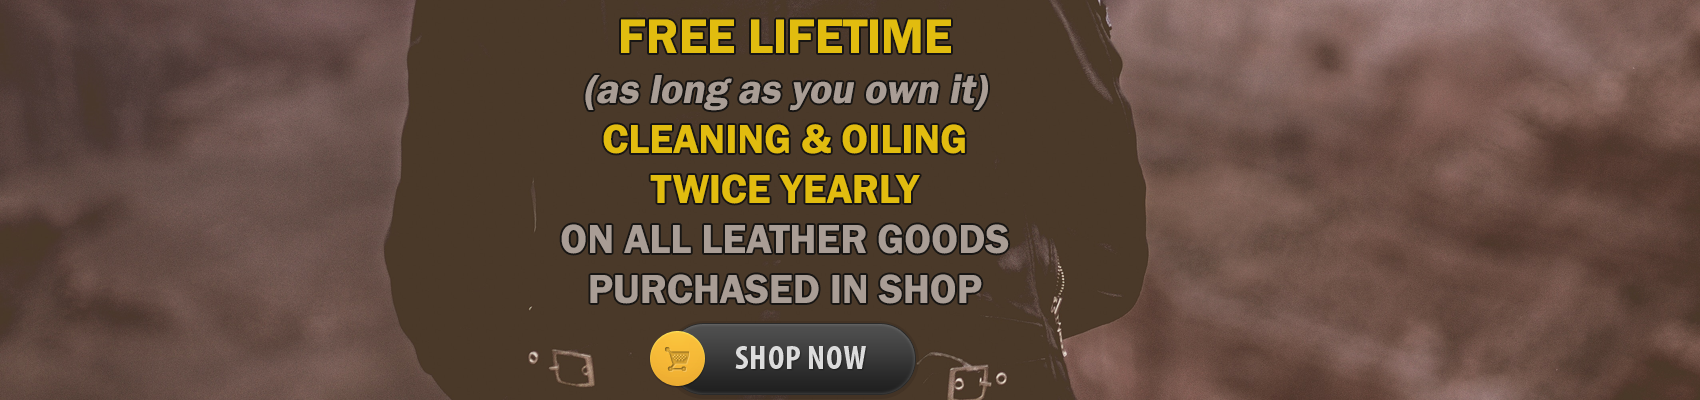 Lifetime Cleaning and Oiling on All Leather Goods